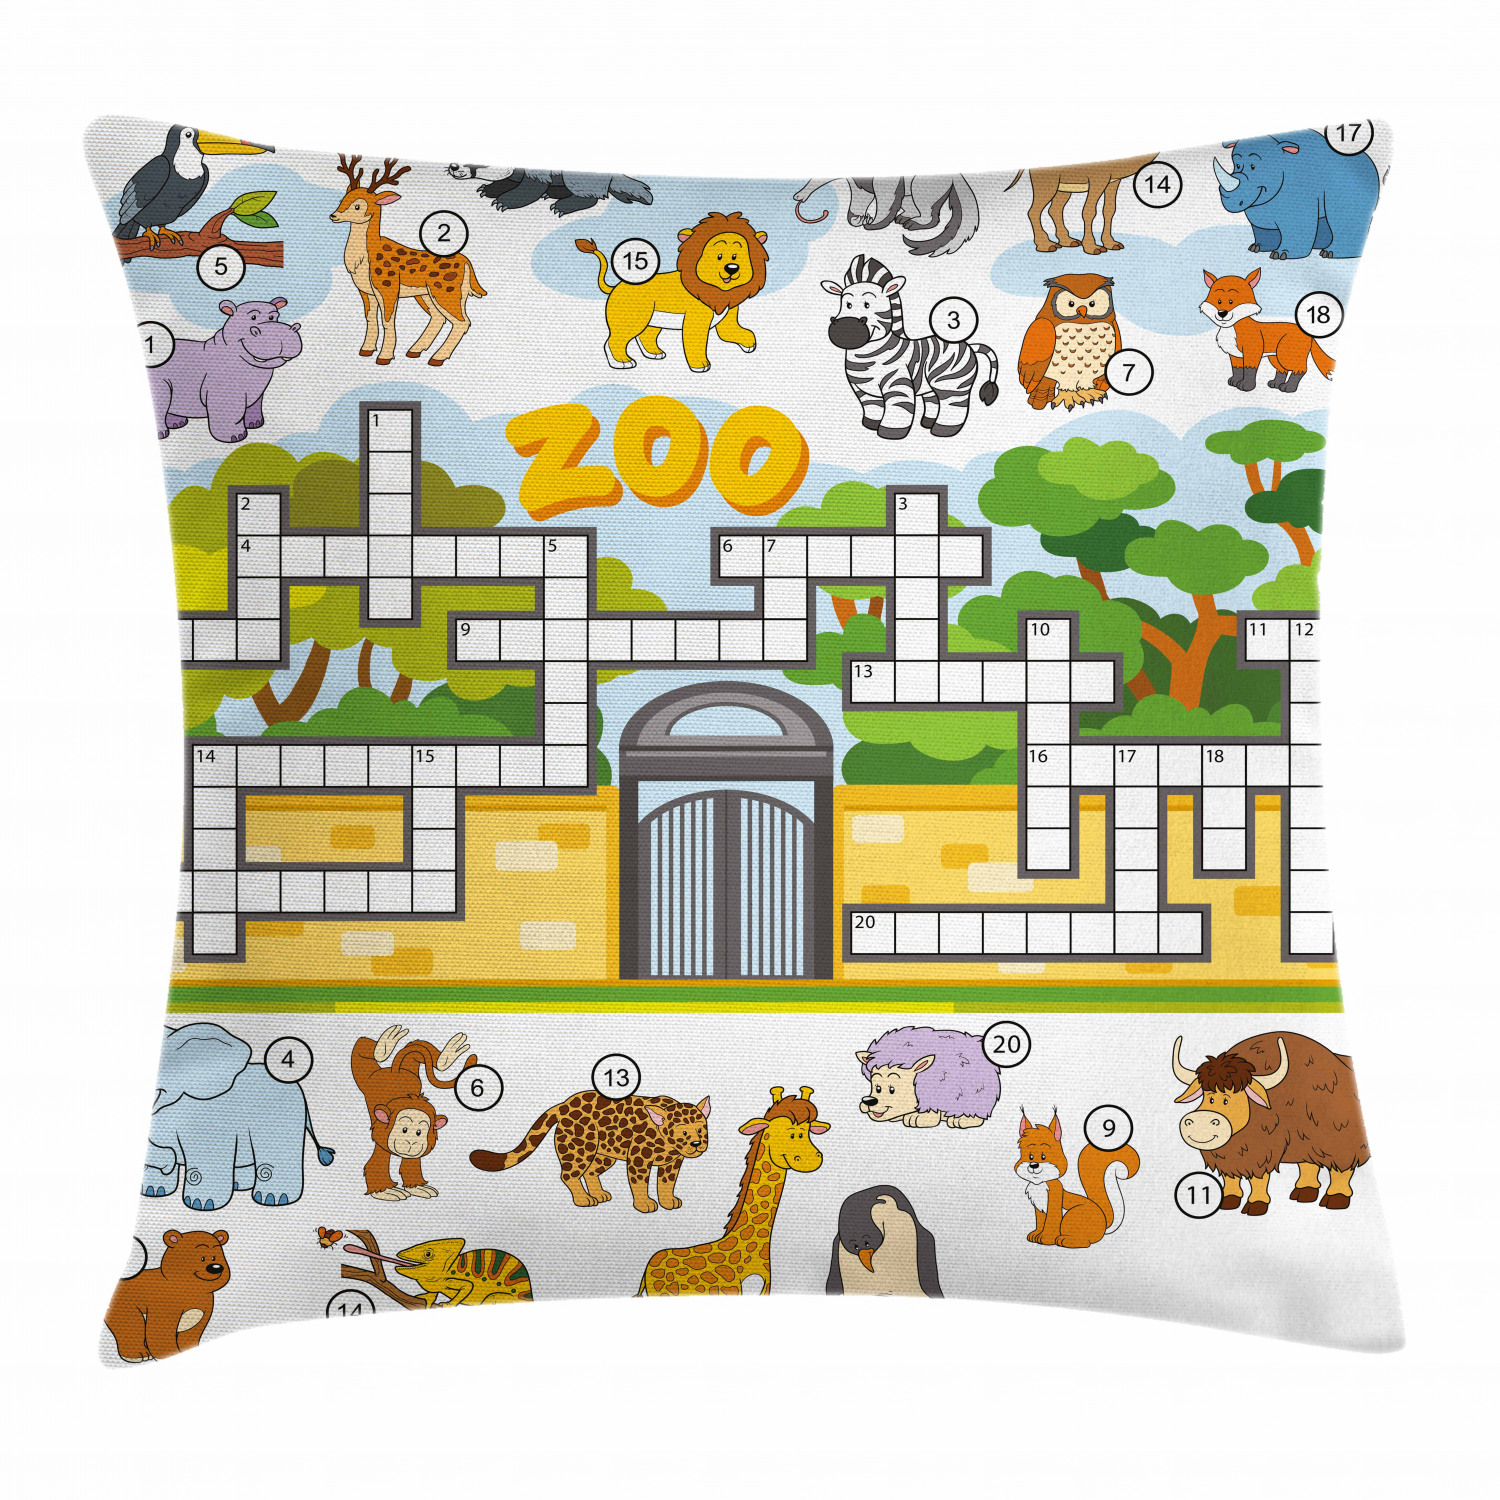 The Animal Zoo Skin Print Cotton Canvas Cushion Cover//Pillow Case*Custom Size